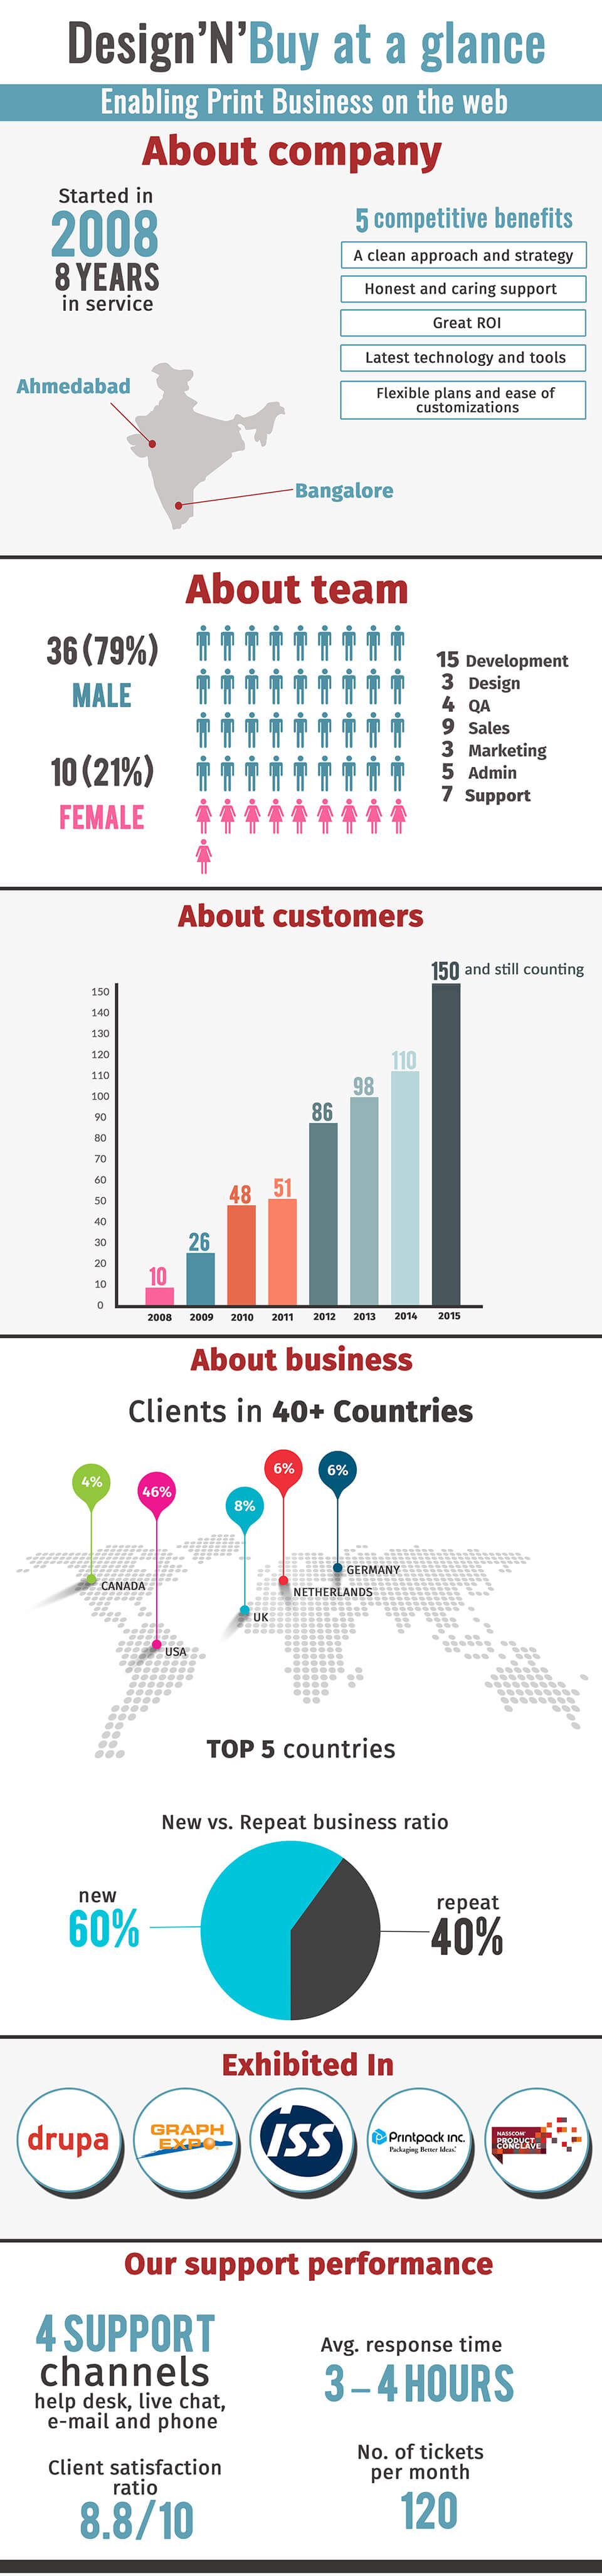 ratio and business A financial analysis comparison in which certain financial statement items are divided by one another to reveal their logical interrelationships some financial ratios (such as net sales to net worth ratio and net income to net sales ratio) are called primary because they indicate the fundamental causes underlying a company's strengths and.